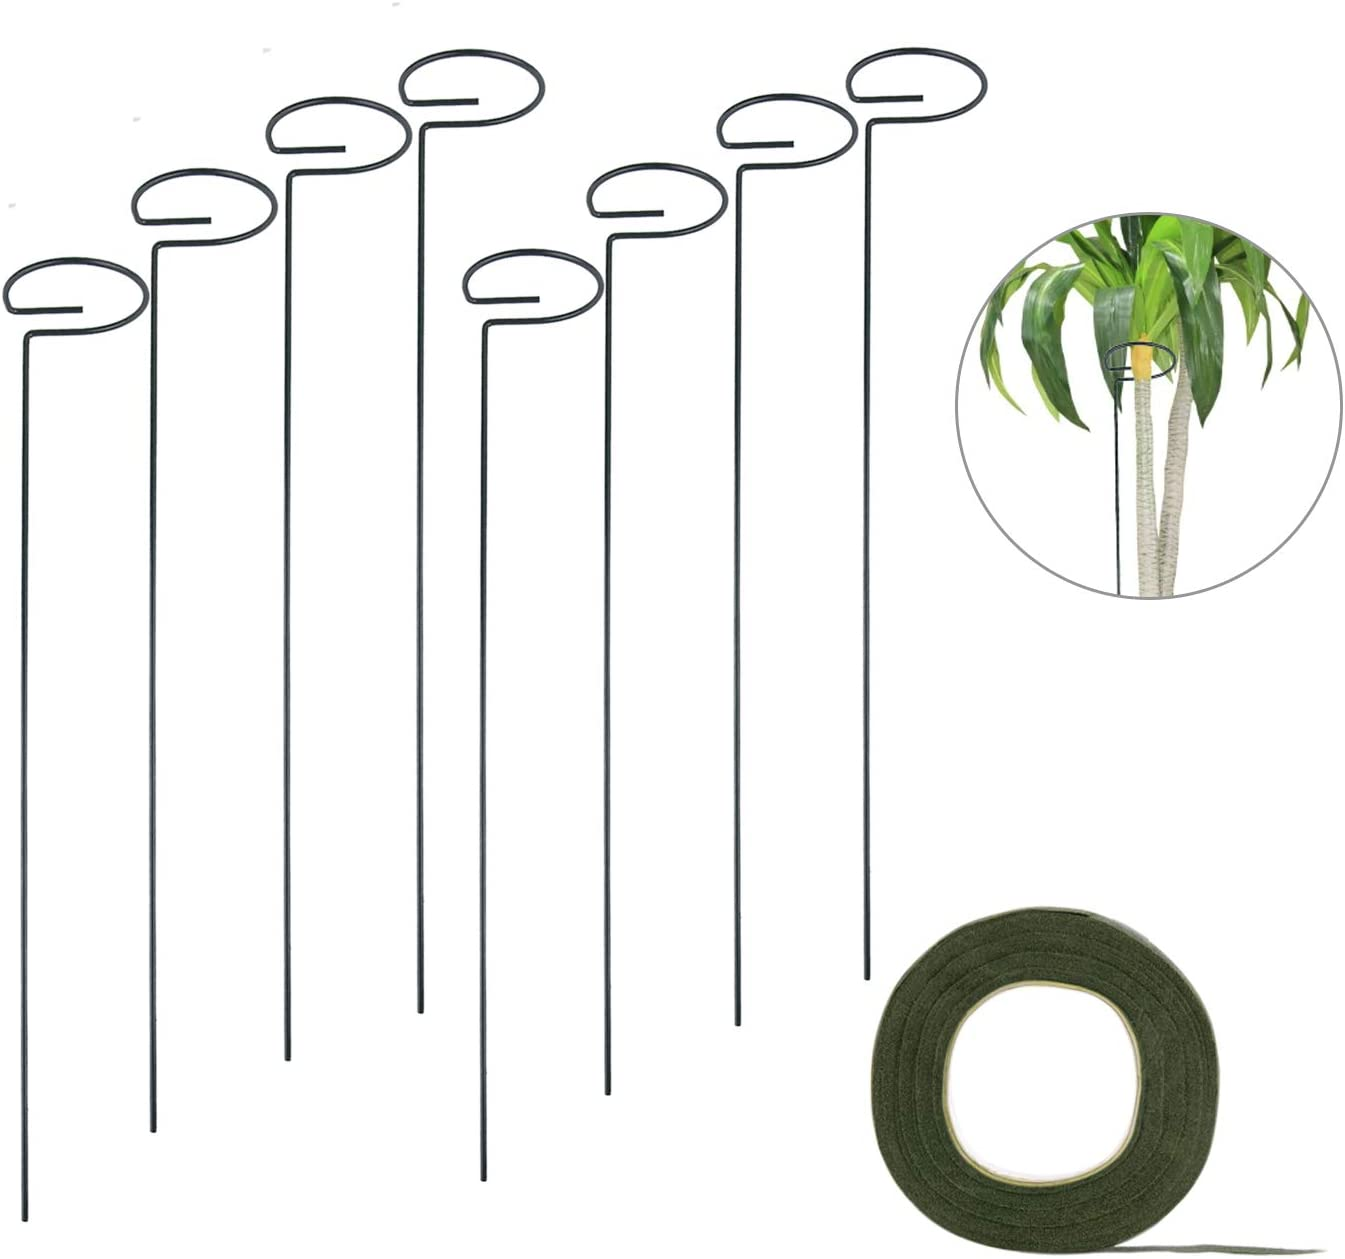 QUACOWW 8 pcs Plant Support Stakes,Garden Flower Support Stake,Single Stem Plant Support Stake,Plant Support Ring with 27 Yard Green Flower Paper Tape for Flowers Tomatoes(40cm/16in)